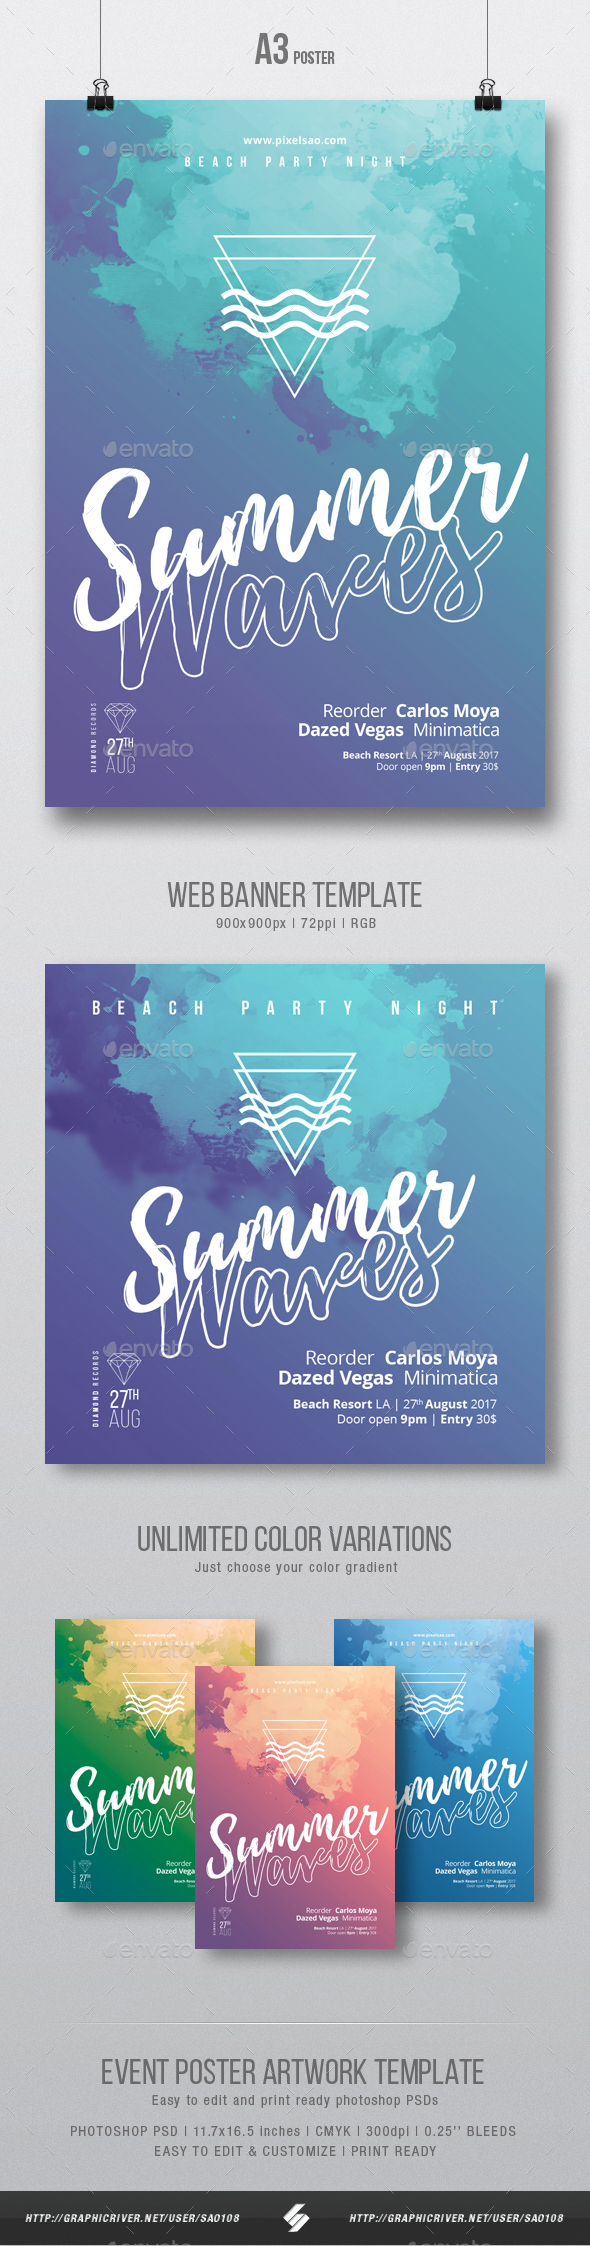 Summer Waves - Party Flyer / Poster Artwork Template A3 - Clubs & Parties Events